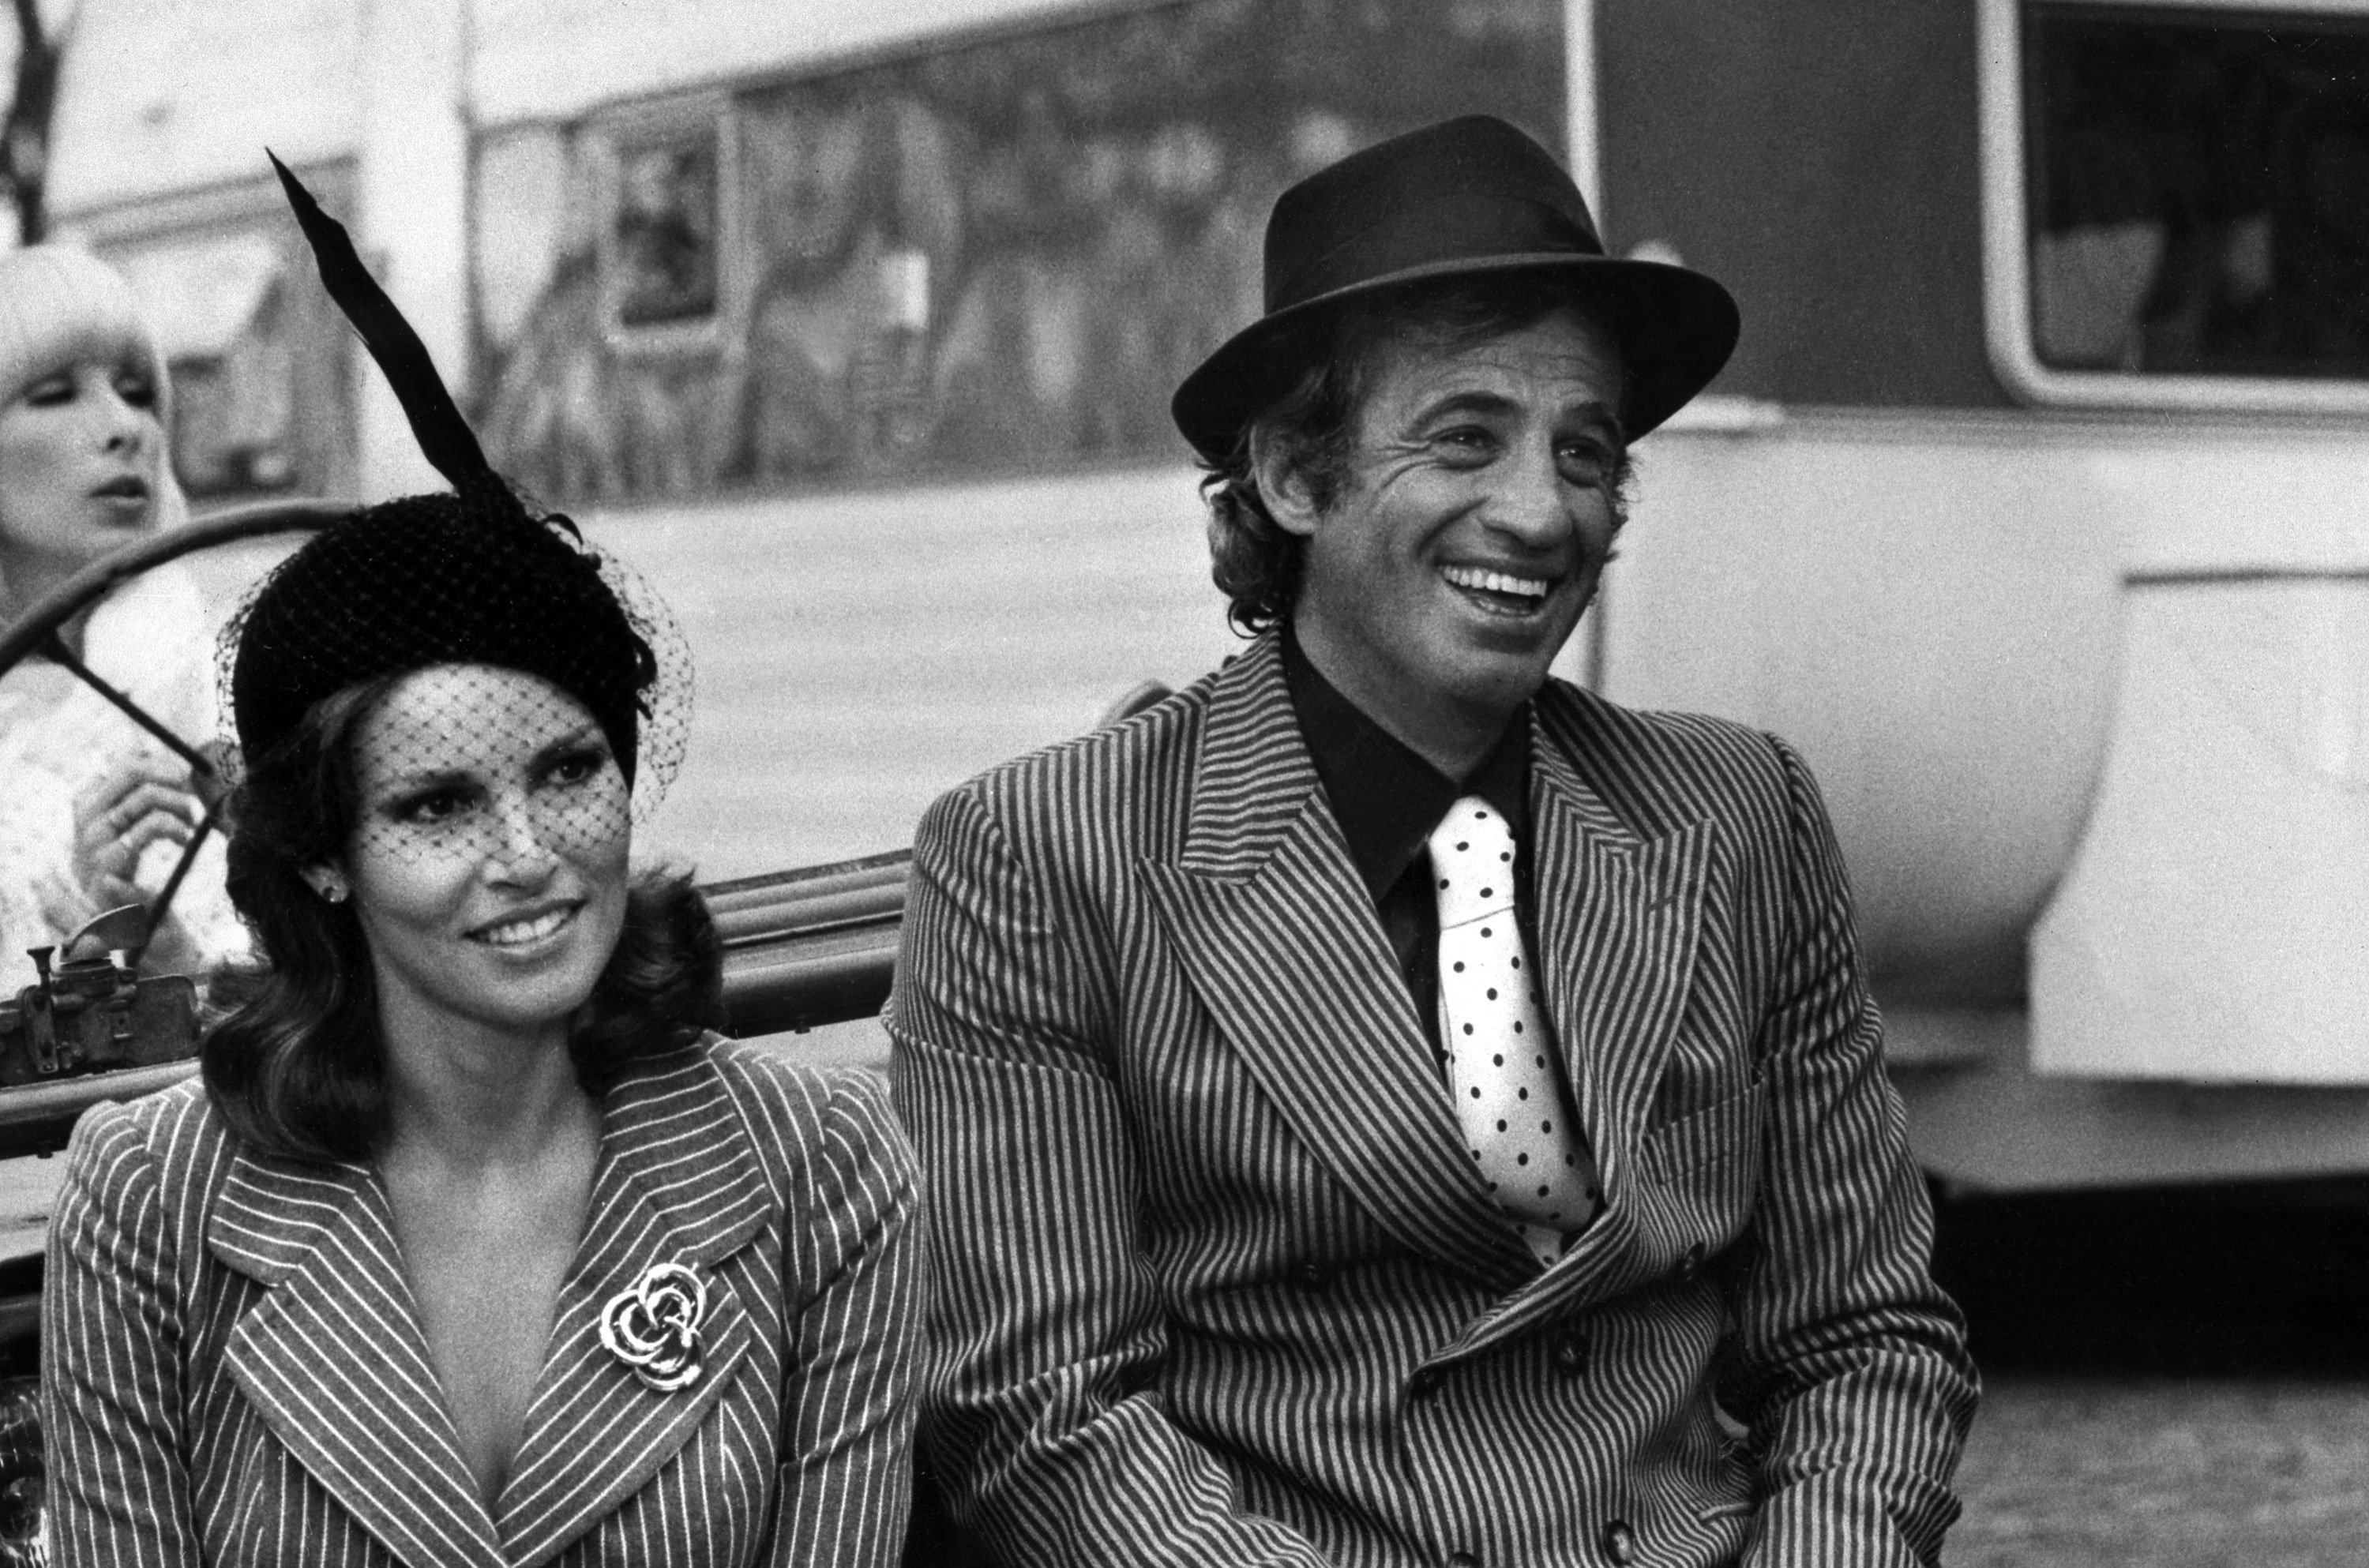 Jean-Paul Belmondo and U.S. actor Raquel Welch during the filming of 'Animal' directed by Claude Zidi in Paris, France, Jan. 1, 1977. (AFP File Photo)